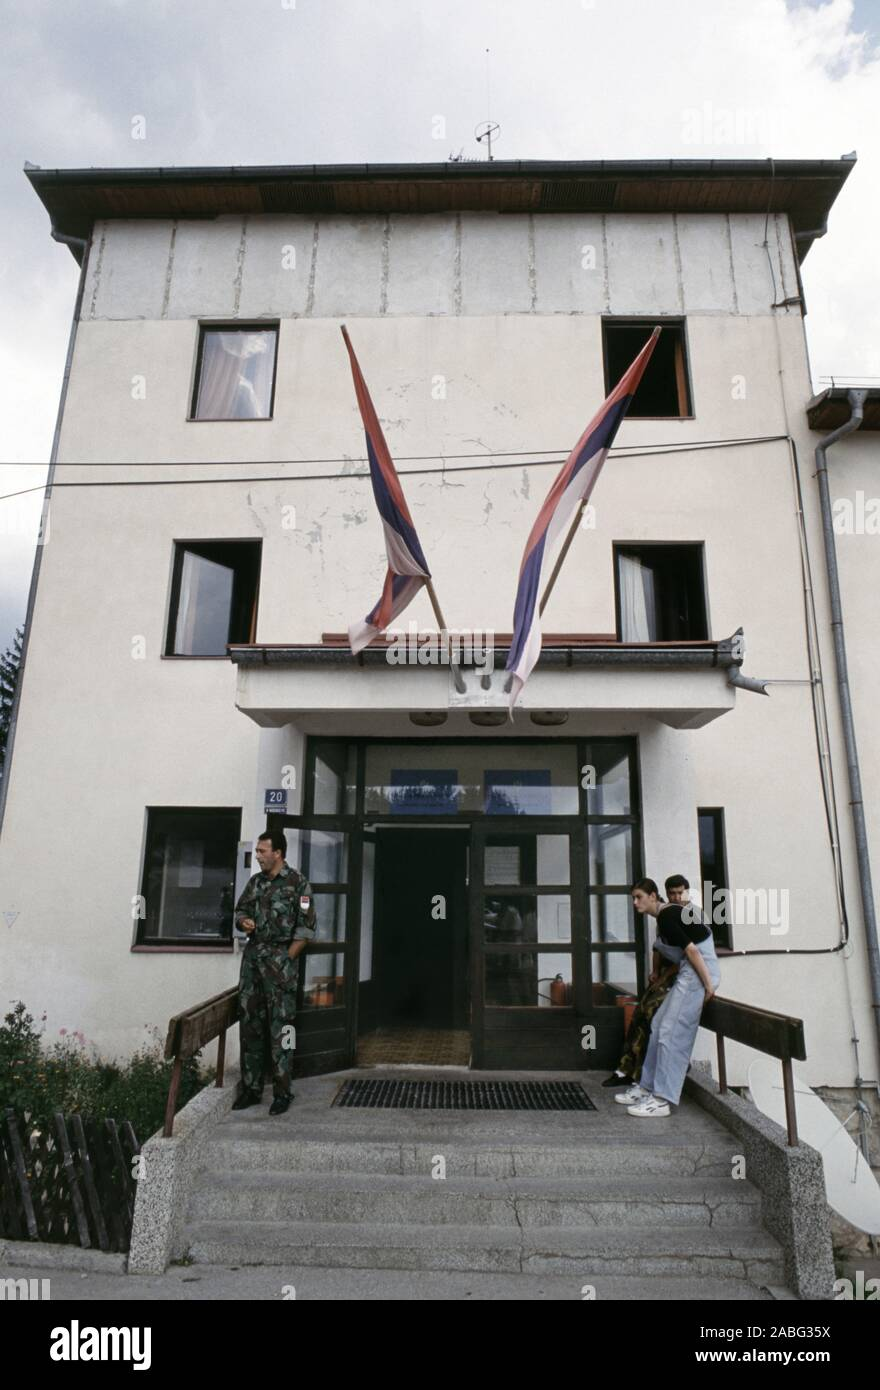 8th August 1993 During the war in Bosnia: the entrance to the Serb Democratic Party (SDS) Headquarters at the Hotel Panorama in Pale. Stock Photo